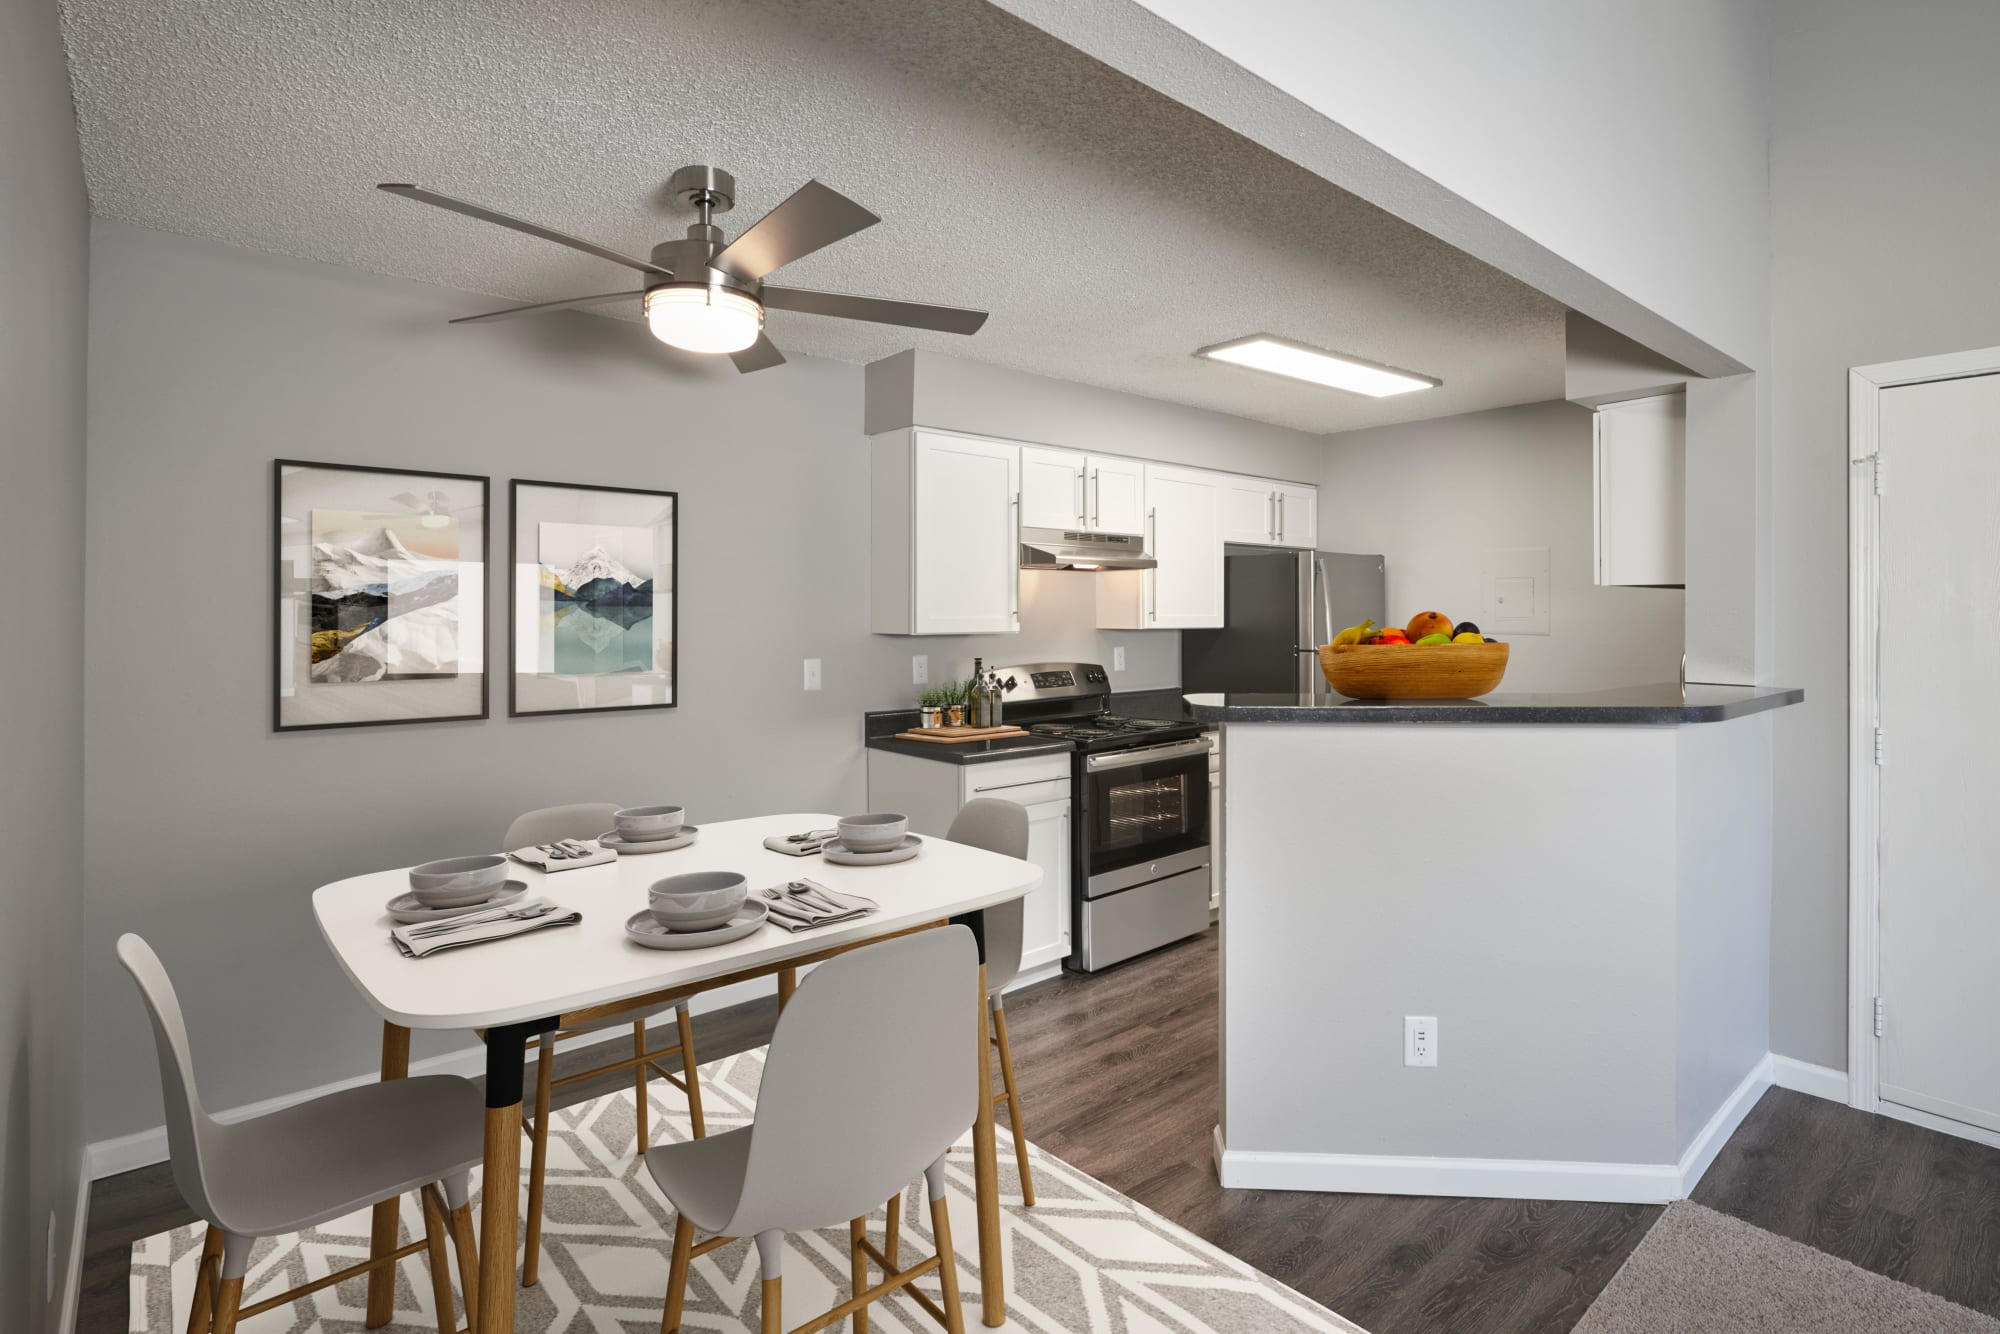 Modern white cabinets in kitchens at Alton Green Apartments in Denver, Colorado